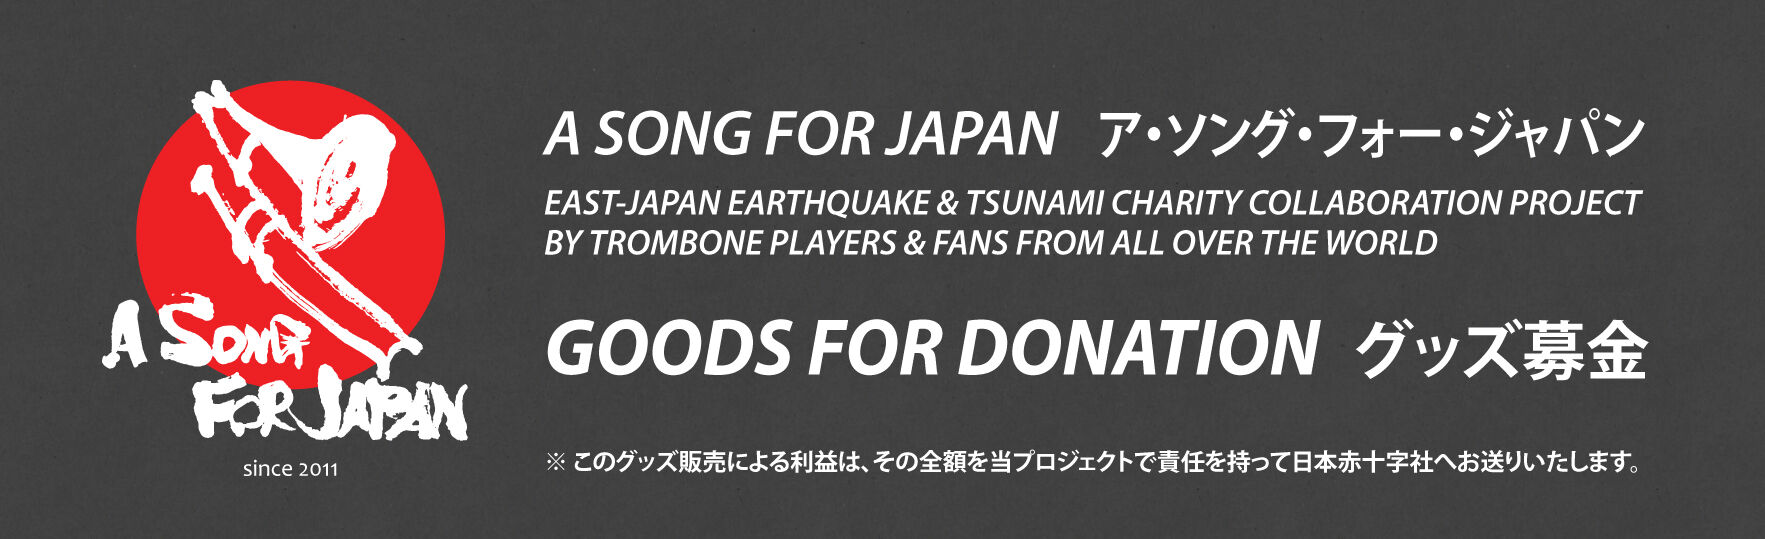 A SONG FOR JAPAN'S GOODS FOR DONATION